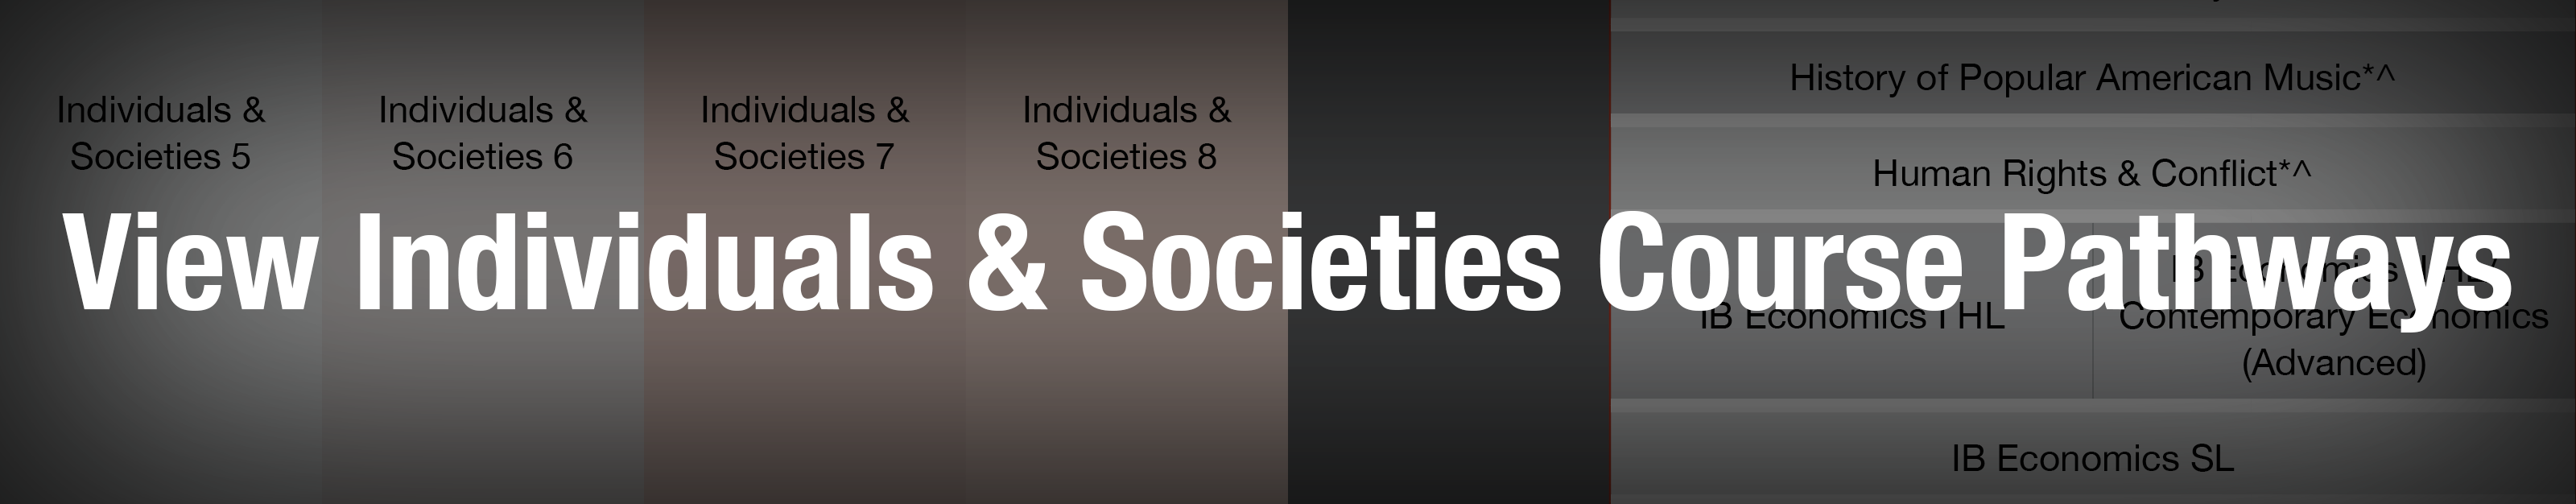 Individuals & Societies